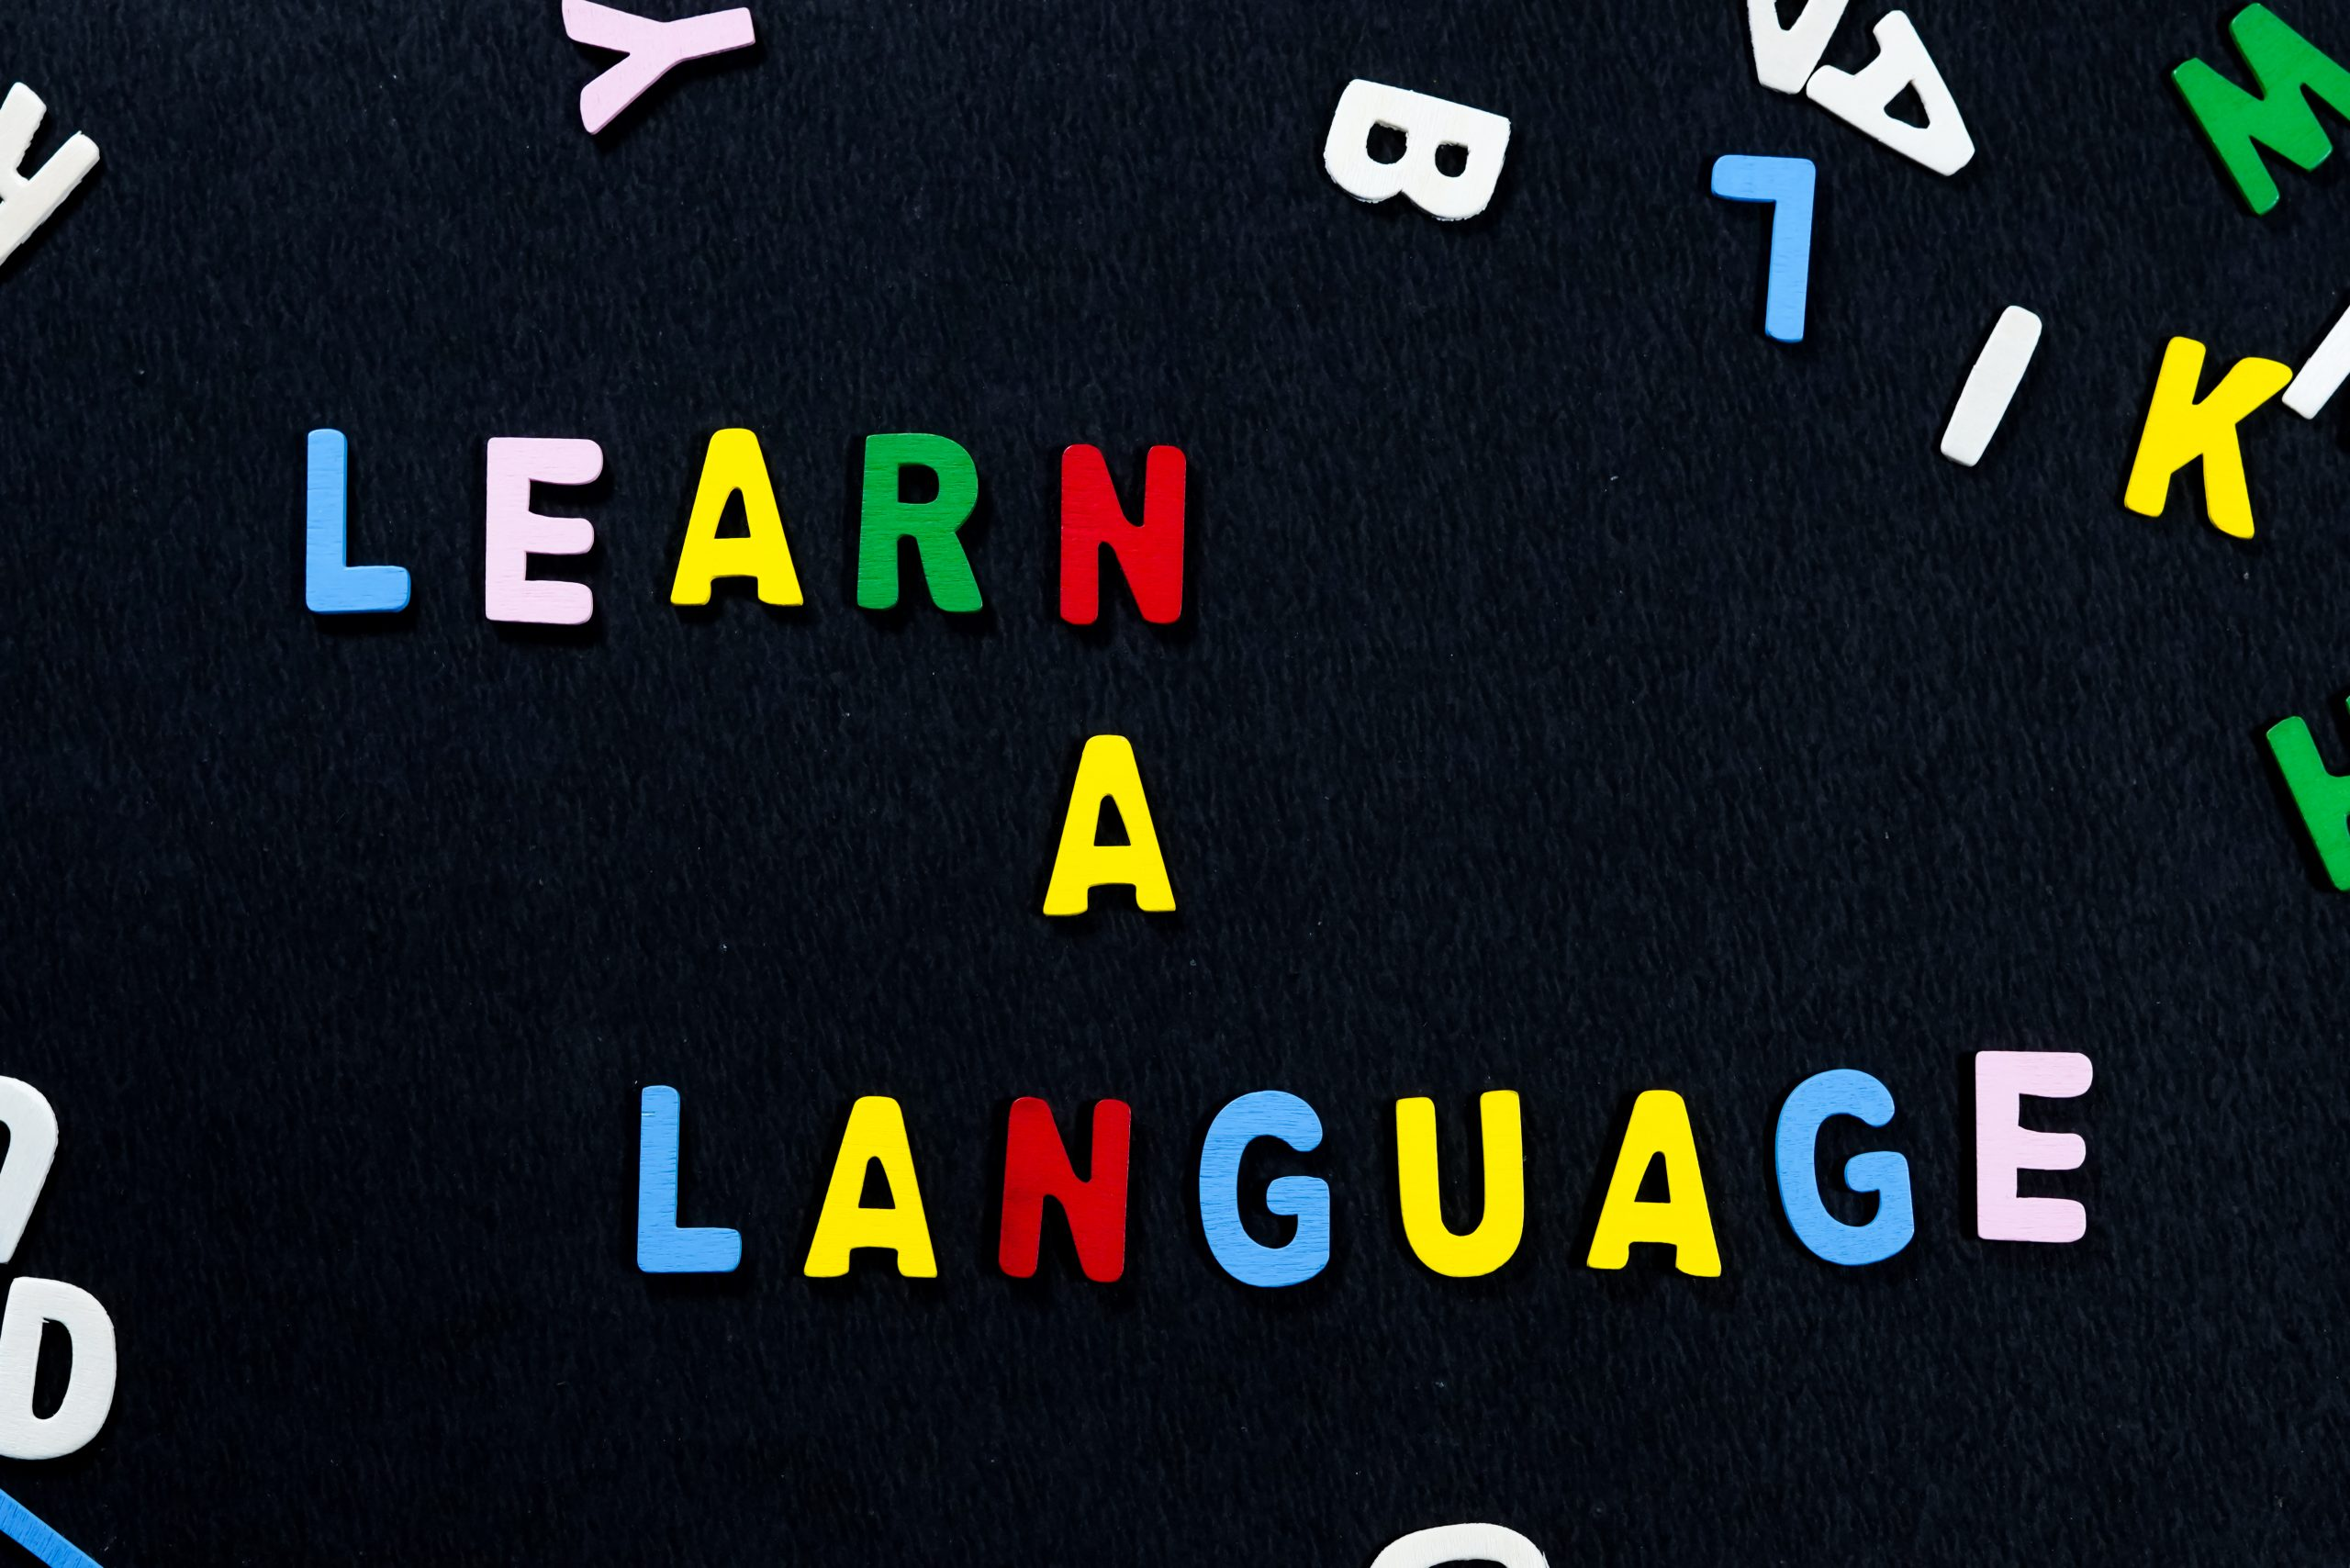 Learn a Language - Free Image by Sukh Photography on PixaHive.com